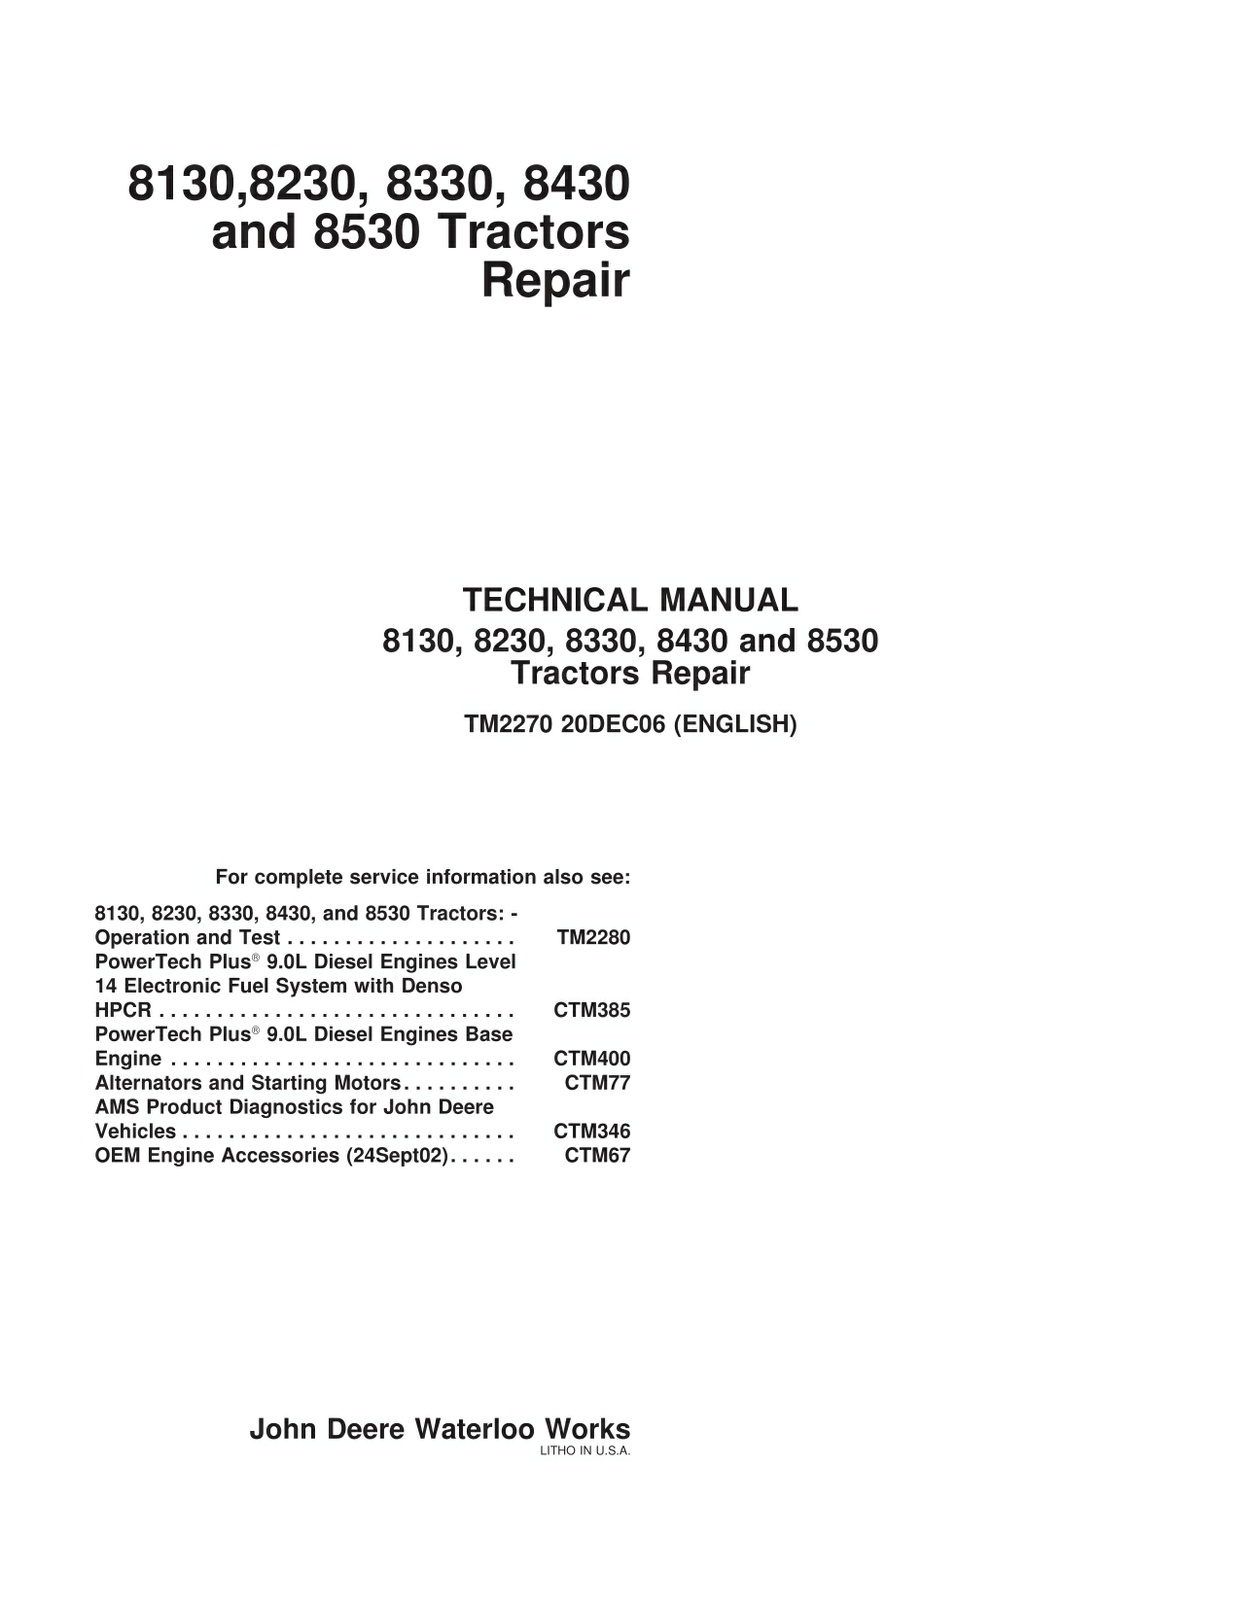 John Deere 8130 8230 8330 8430 8530 - technical repair manual - TM2270 - 1618 pages - english